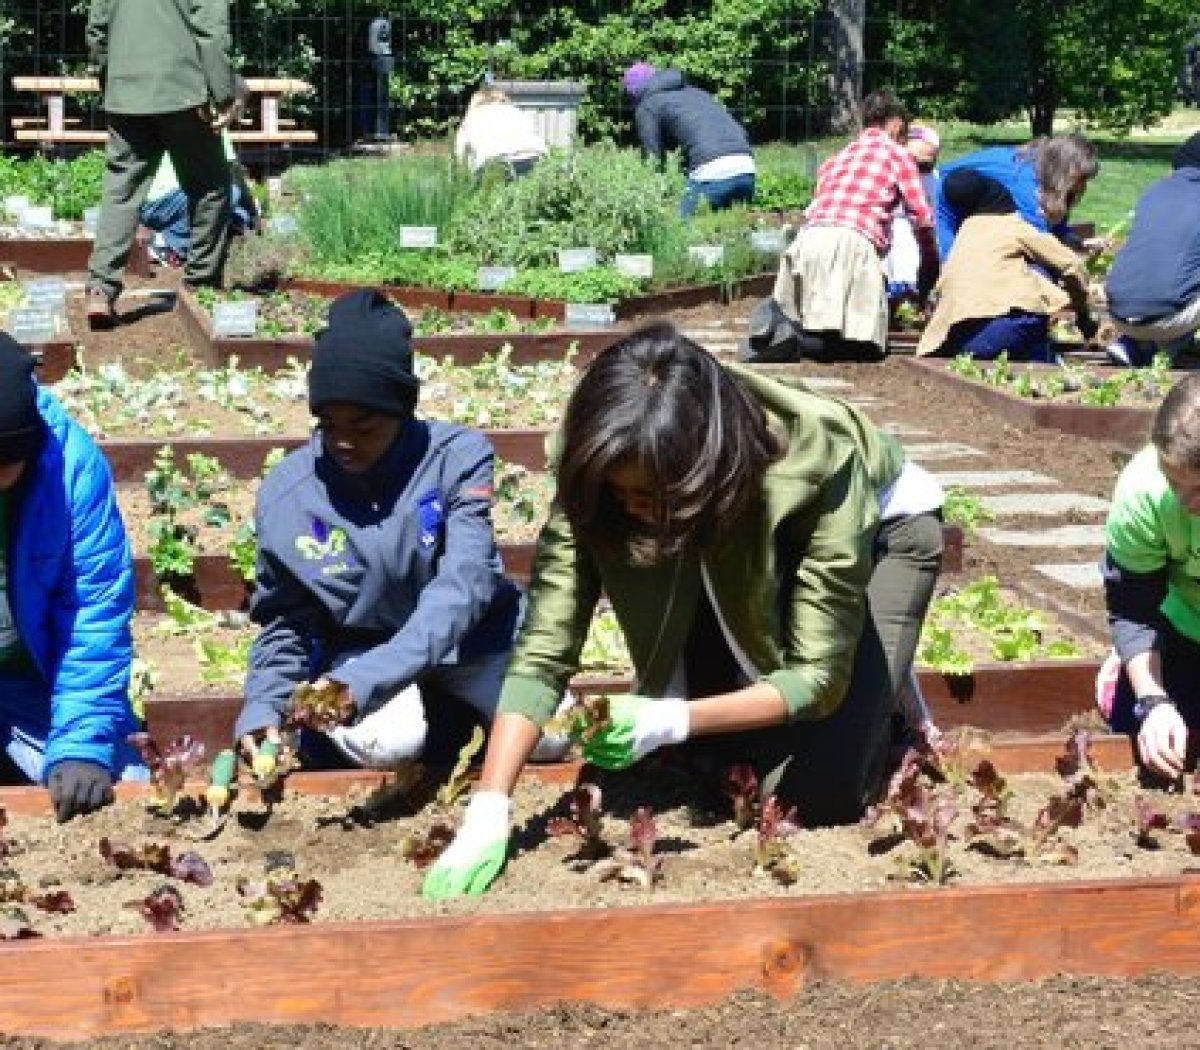 Students invited from Washburn, Wisconsin, Cortez, Colorado, New Orleans, Louisiana and the District of Columbia help First Lady Michelle Obama plant the White House Kitchen Garden Tuesday, April 5, 2016. /Photo by Travis Riddick @actor_tr